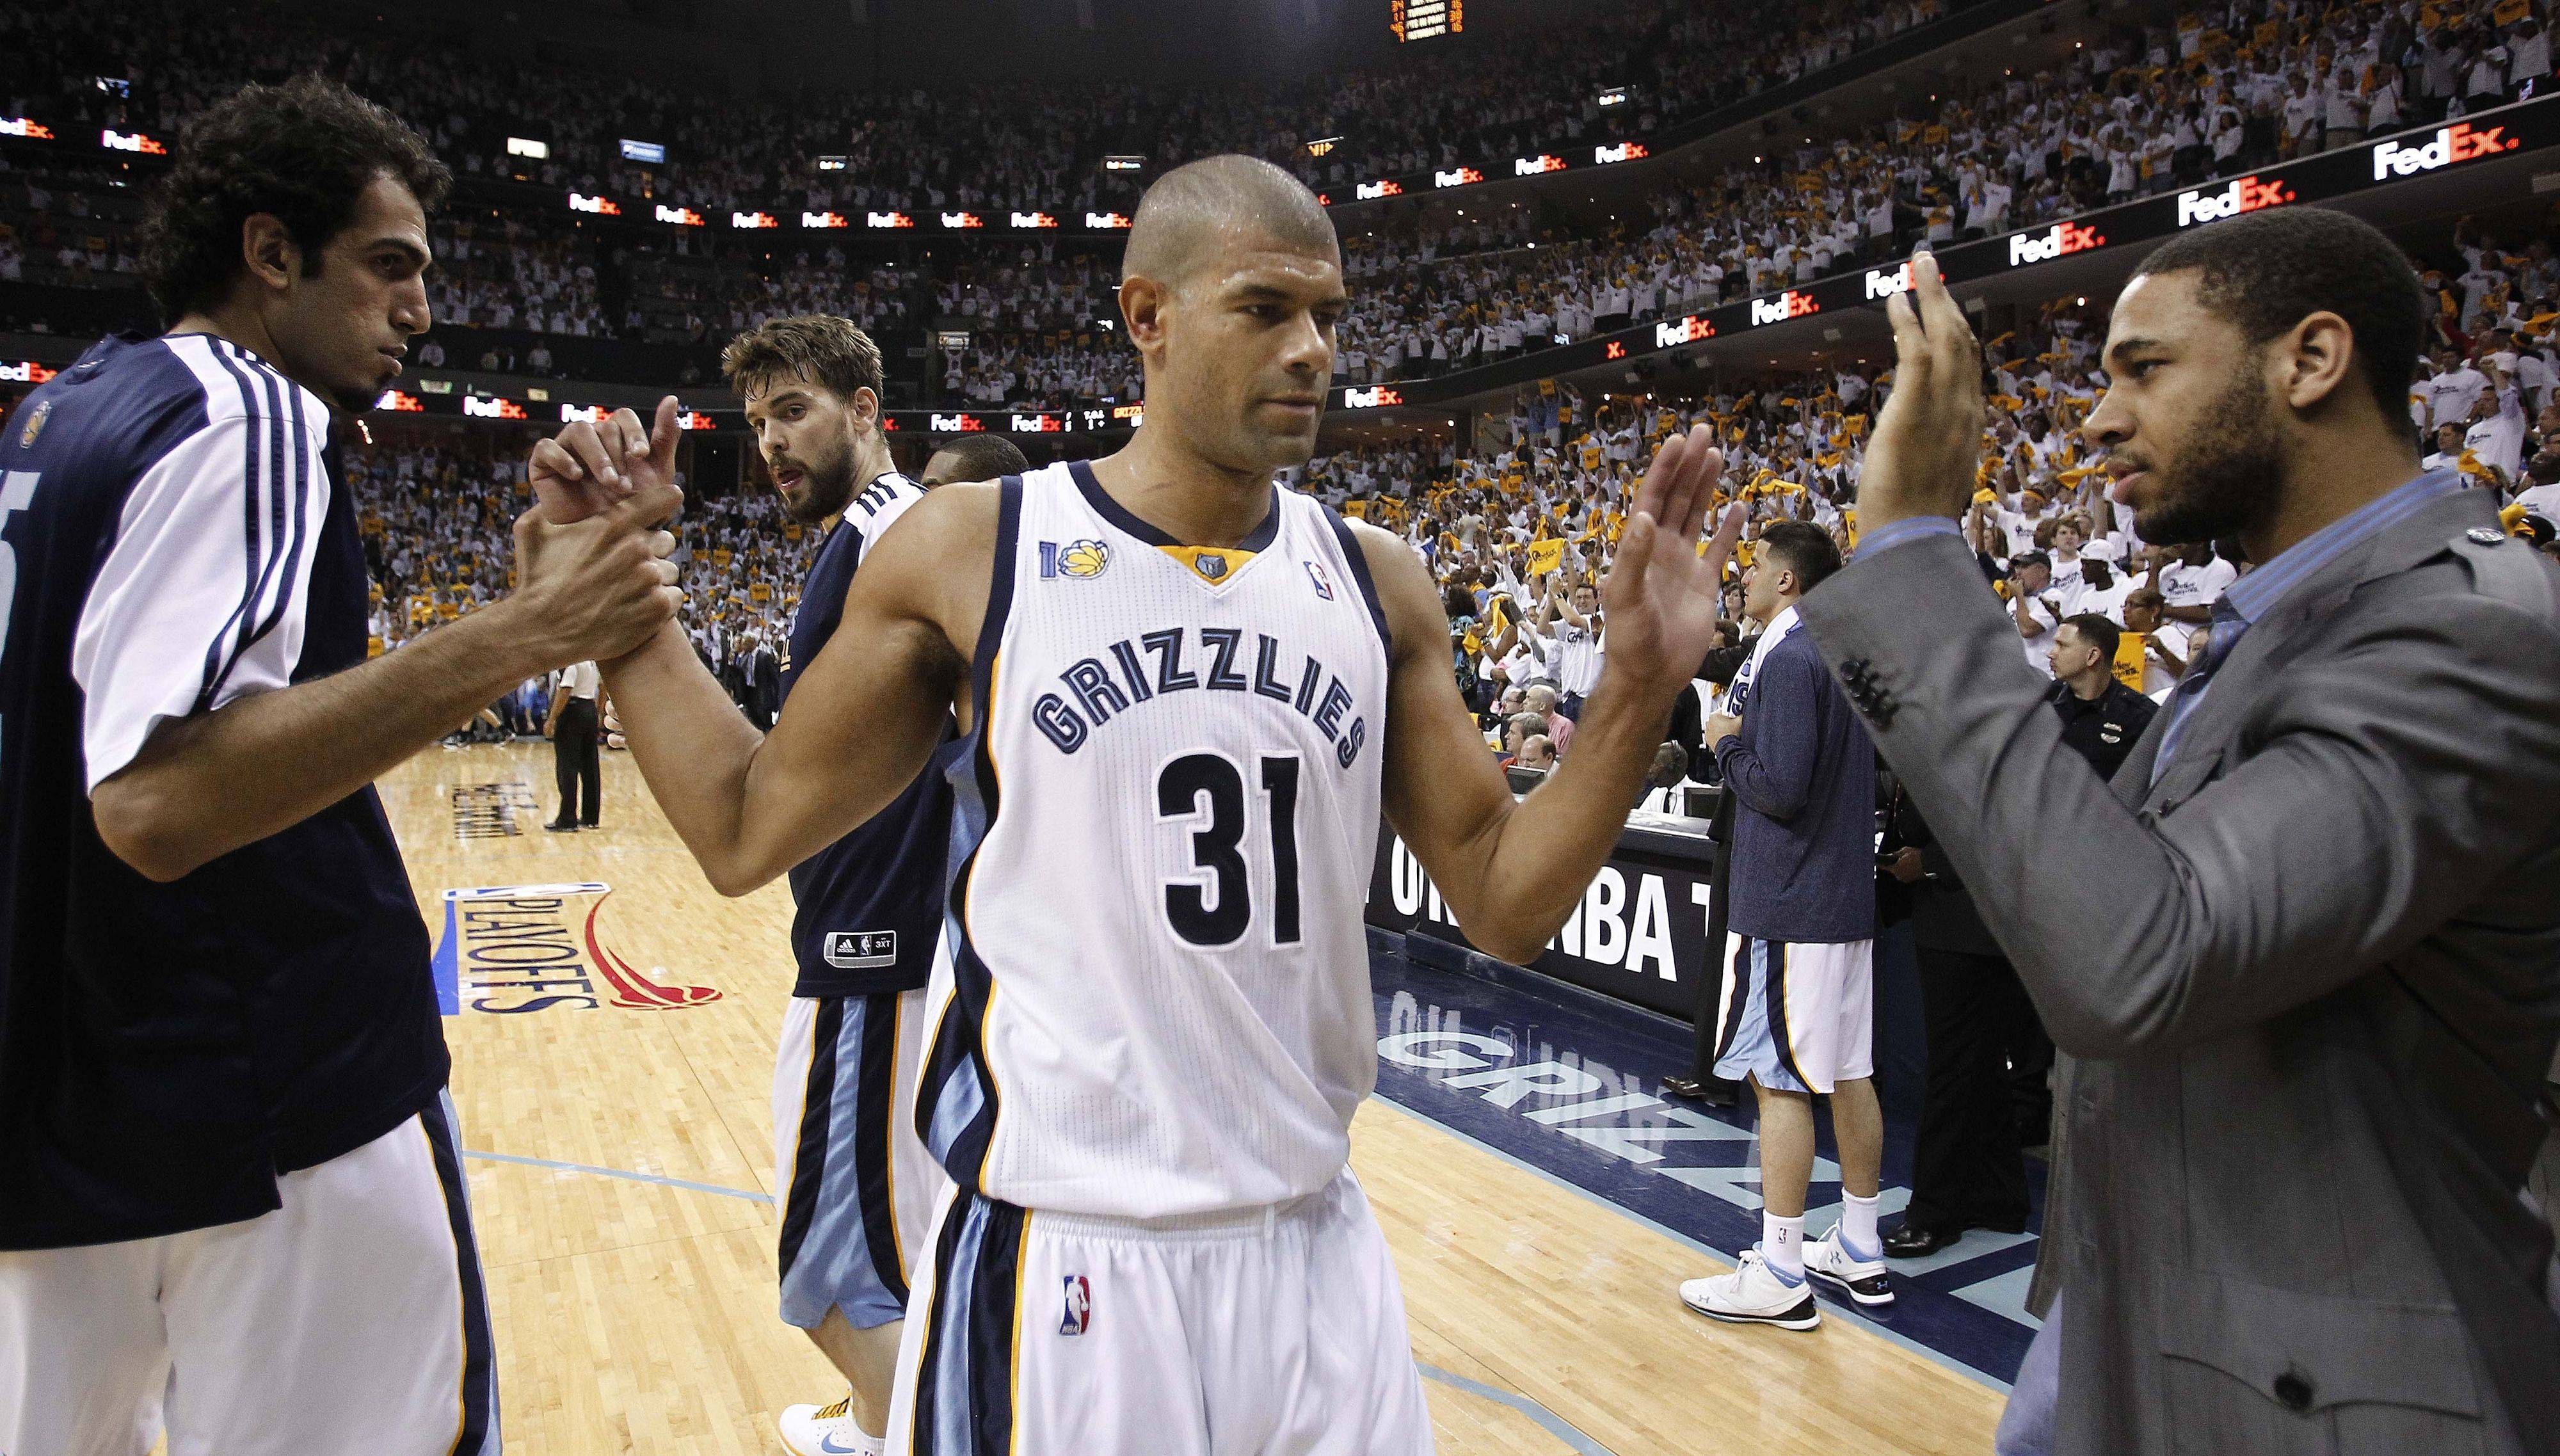 Former Memphis Grizzlies forward Shane Battier (31) says he will sign with the Miami Heat. A solid 3-point shooter, Battier has averaged 9.6 points and 4.7 rebounds in nine NBA seasons.